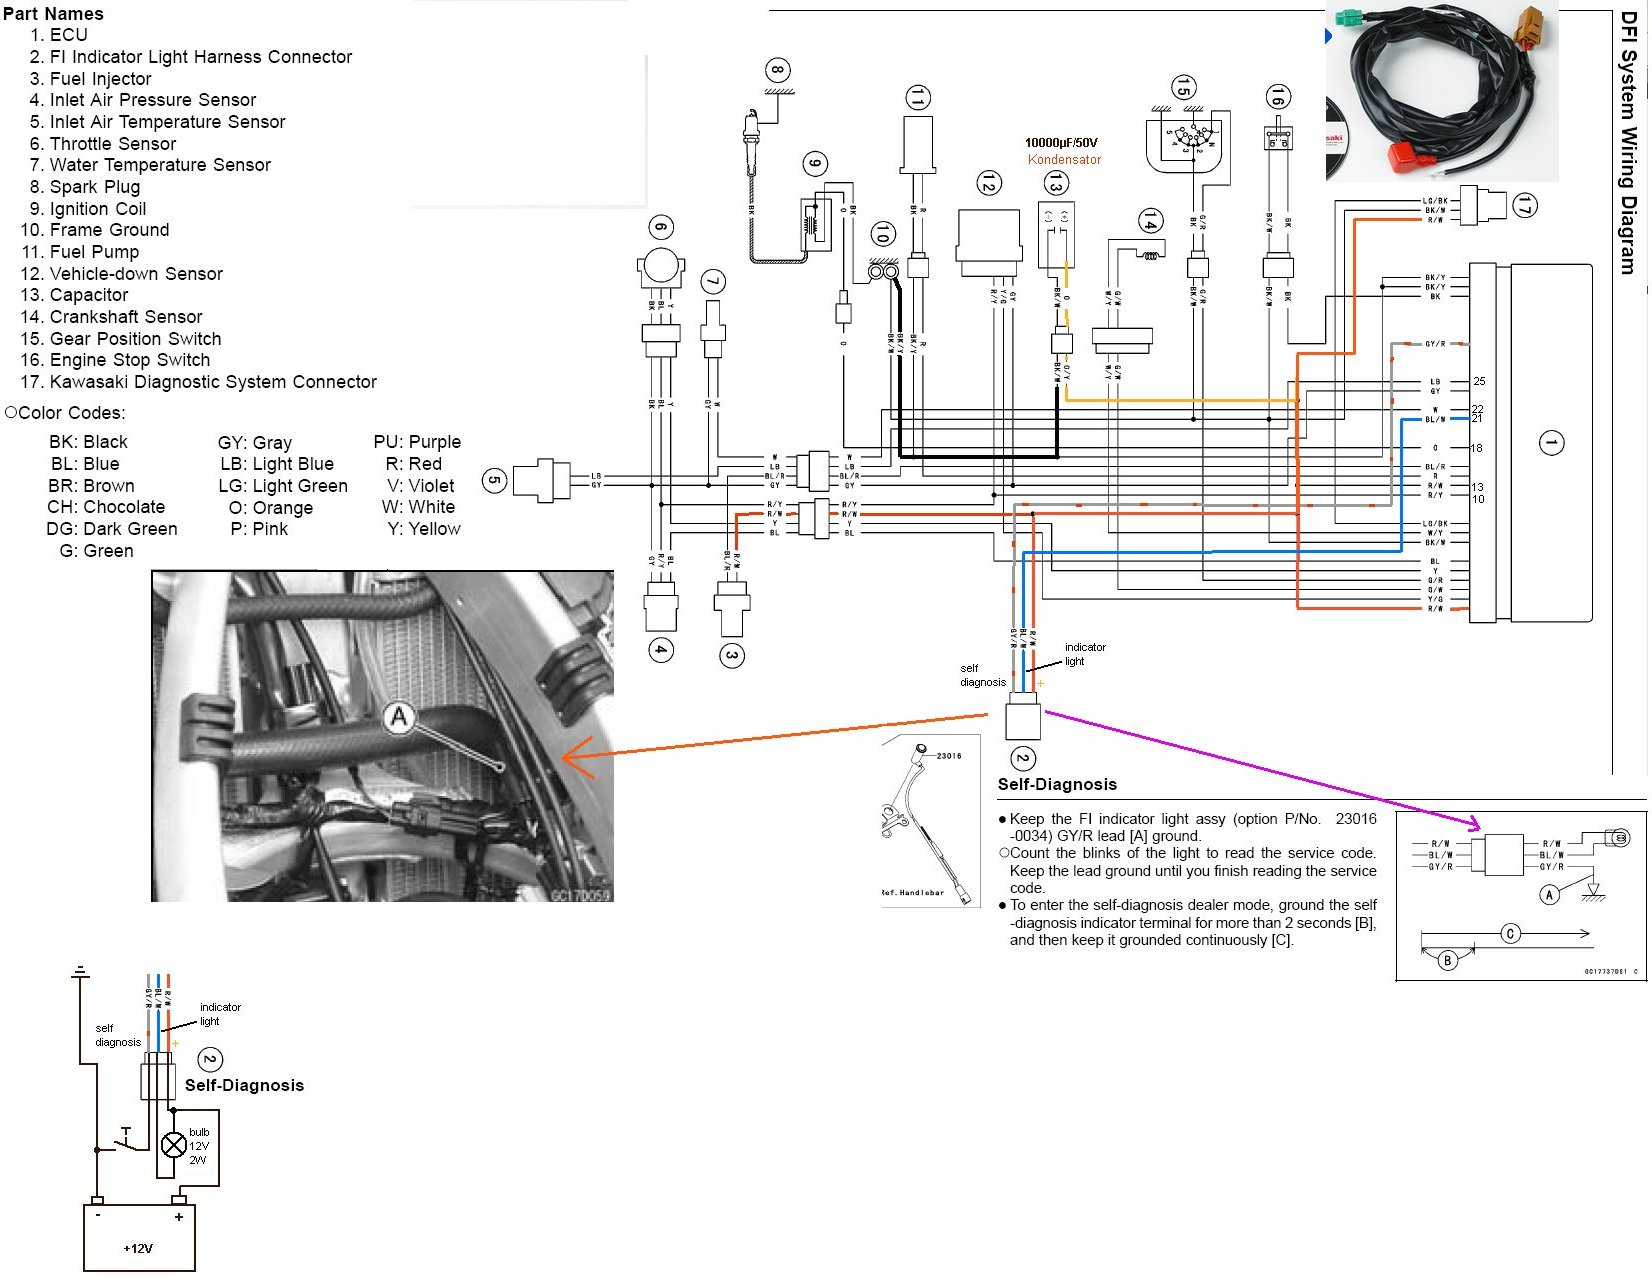 2009 Kawasaki Teryx Wiring Diagram Auto Electrical Brute Force 750 On Winch Switch Warn Related With